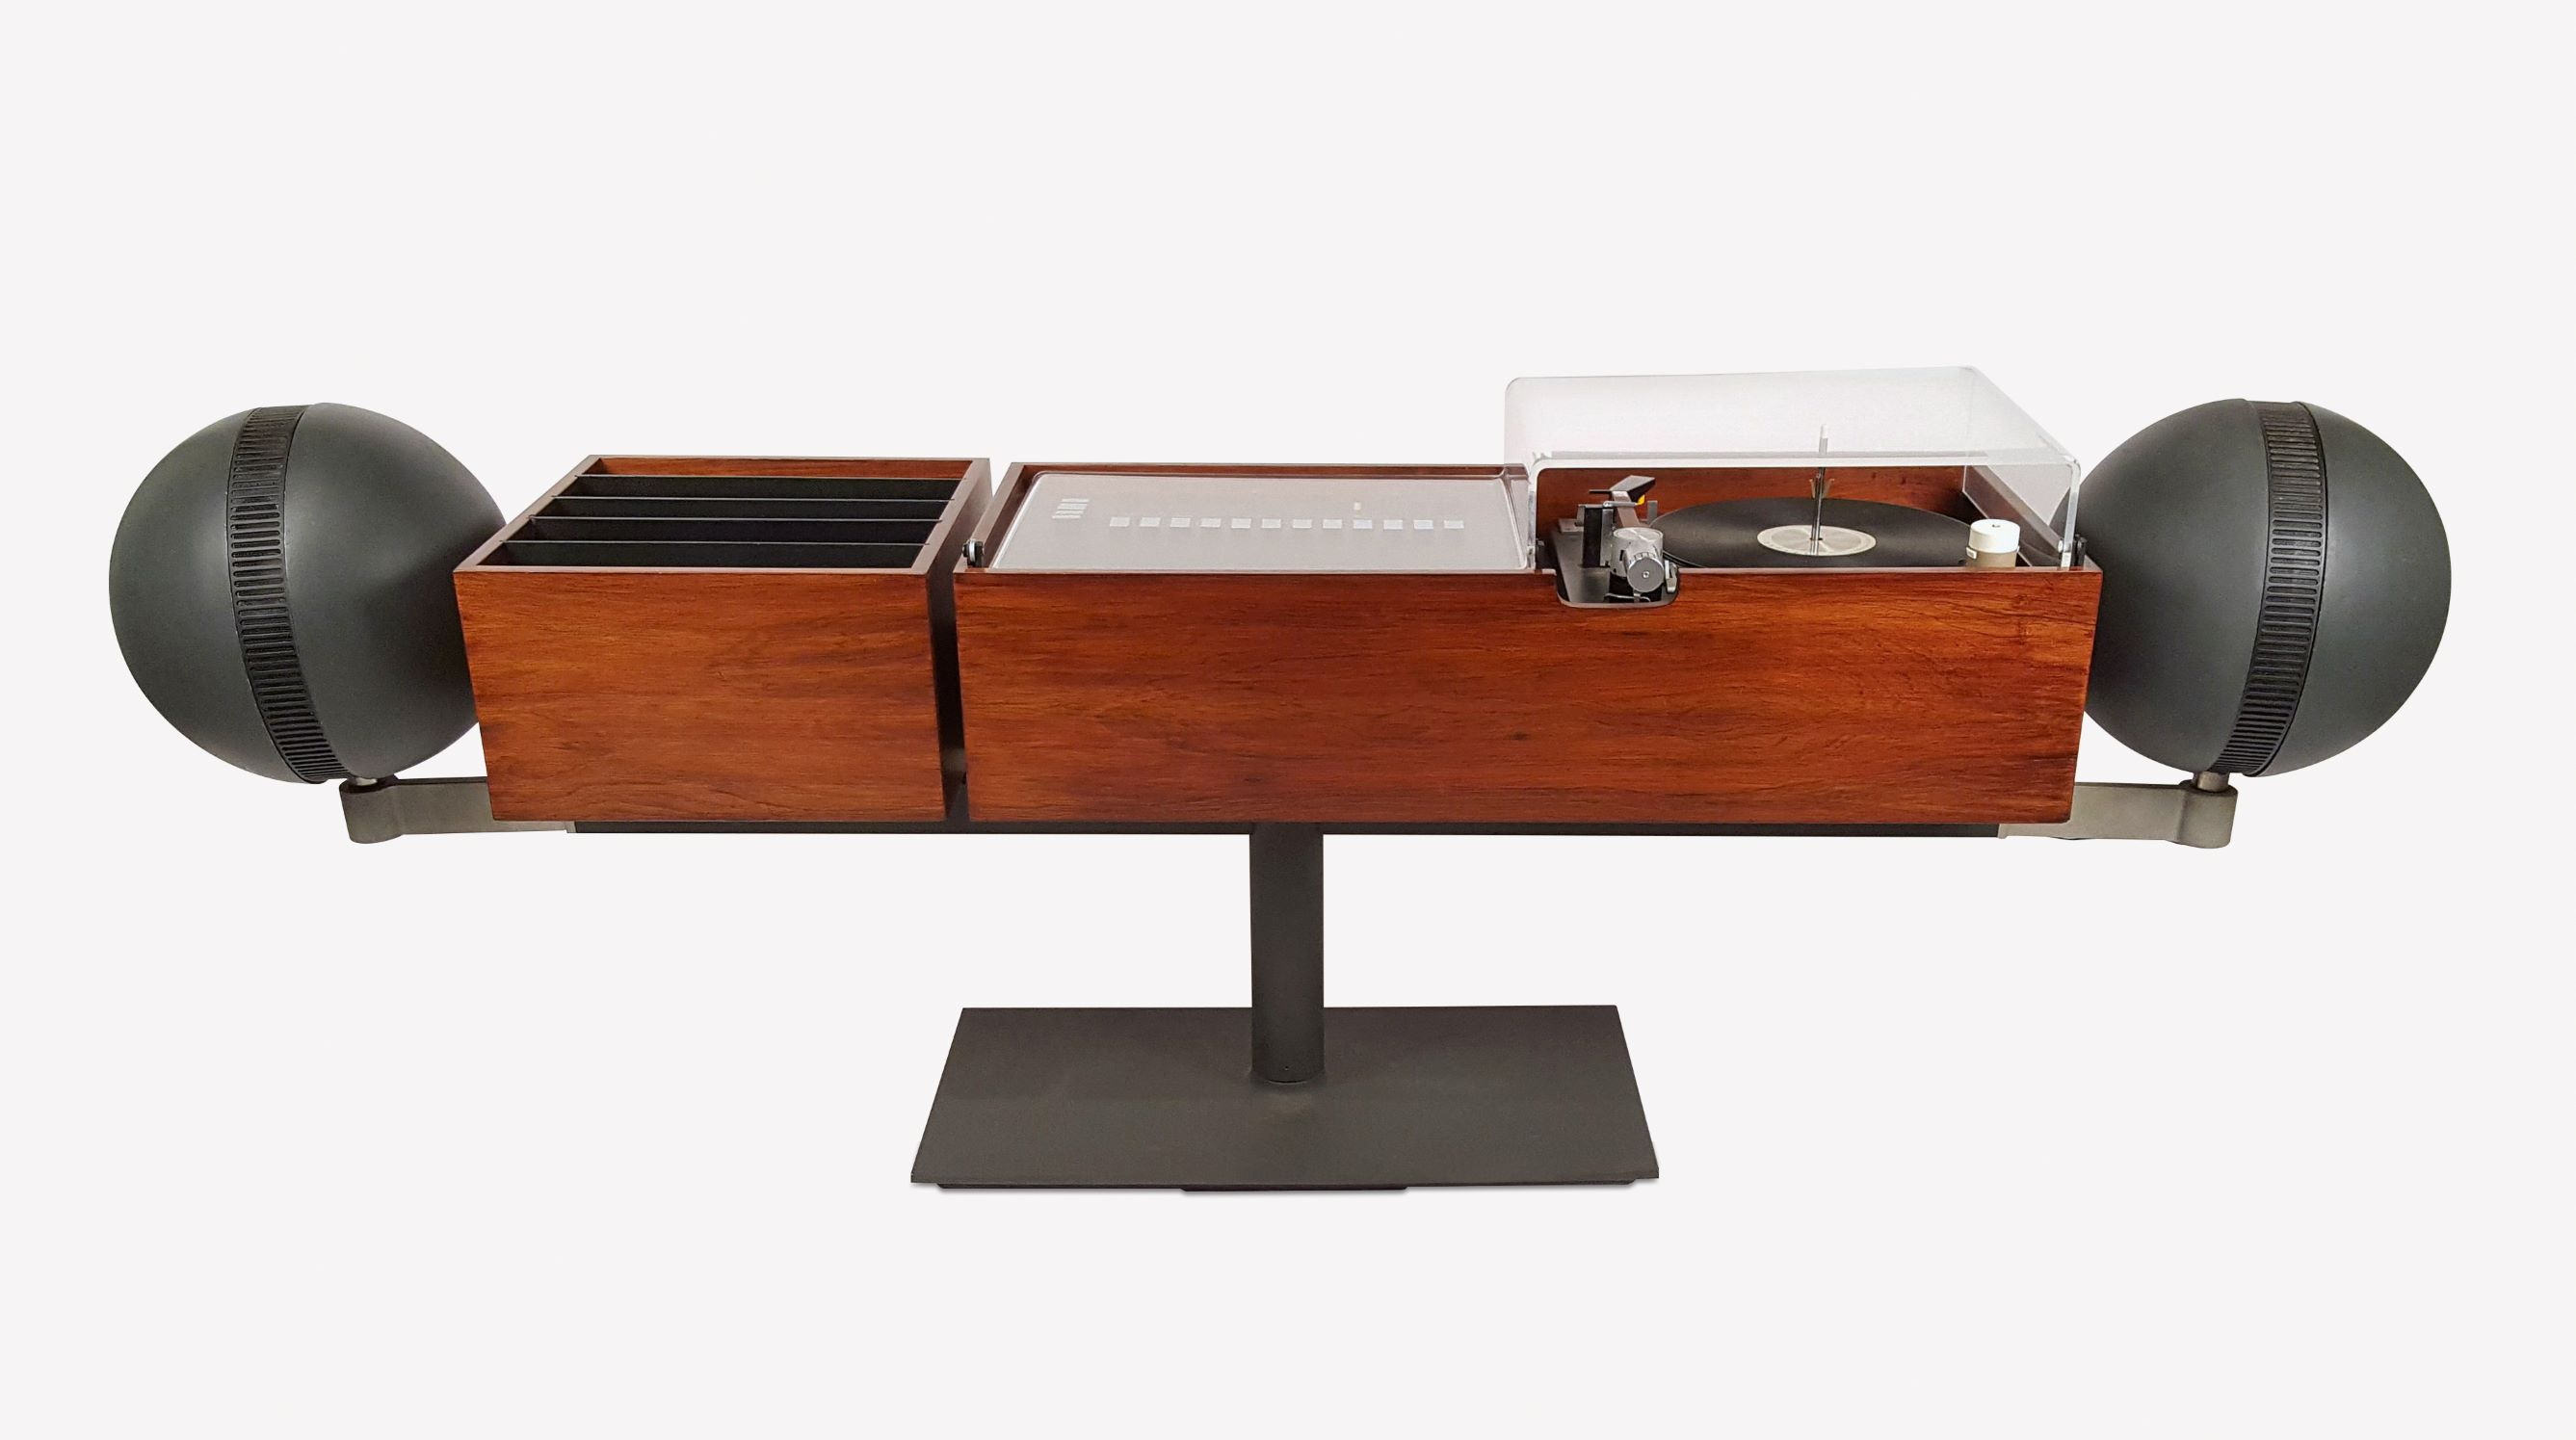 Project G2 Stereo, Hugh Spencer, Clairtone, 1966